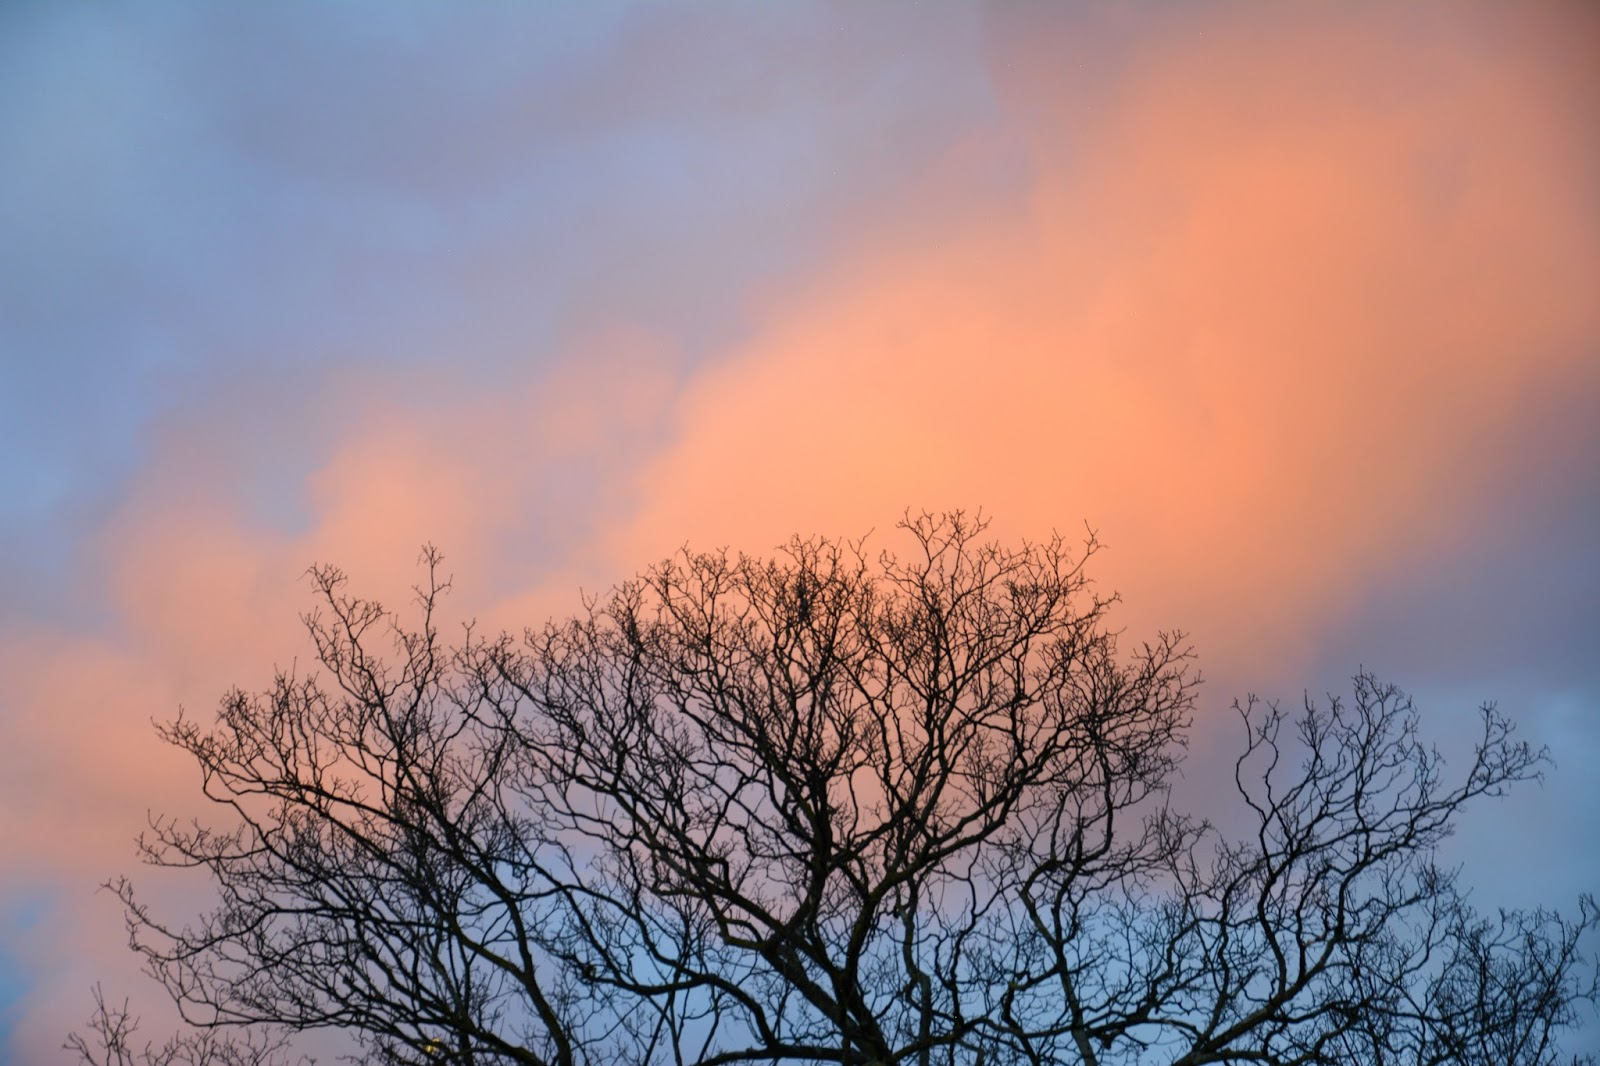 Tree branches in front of pink cloud on blue sky